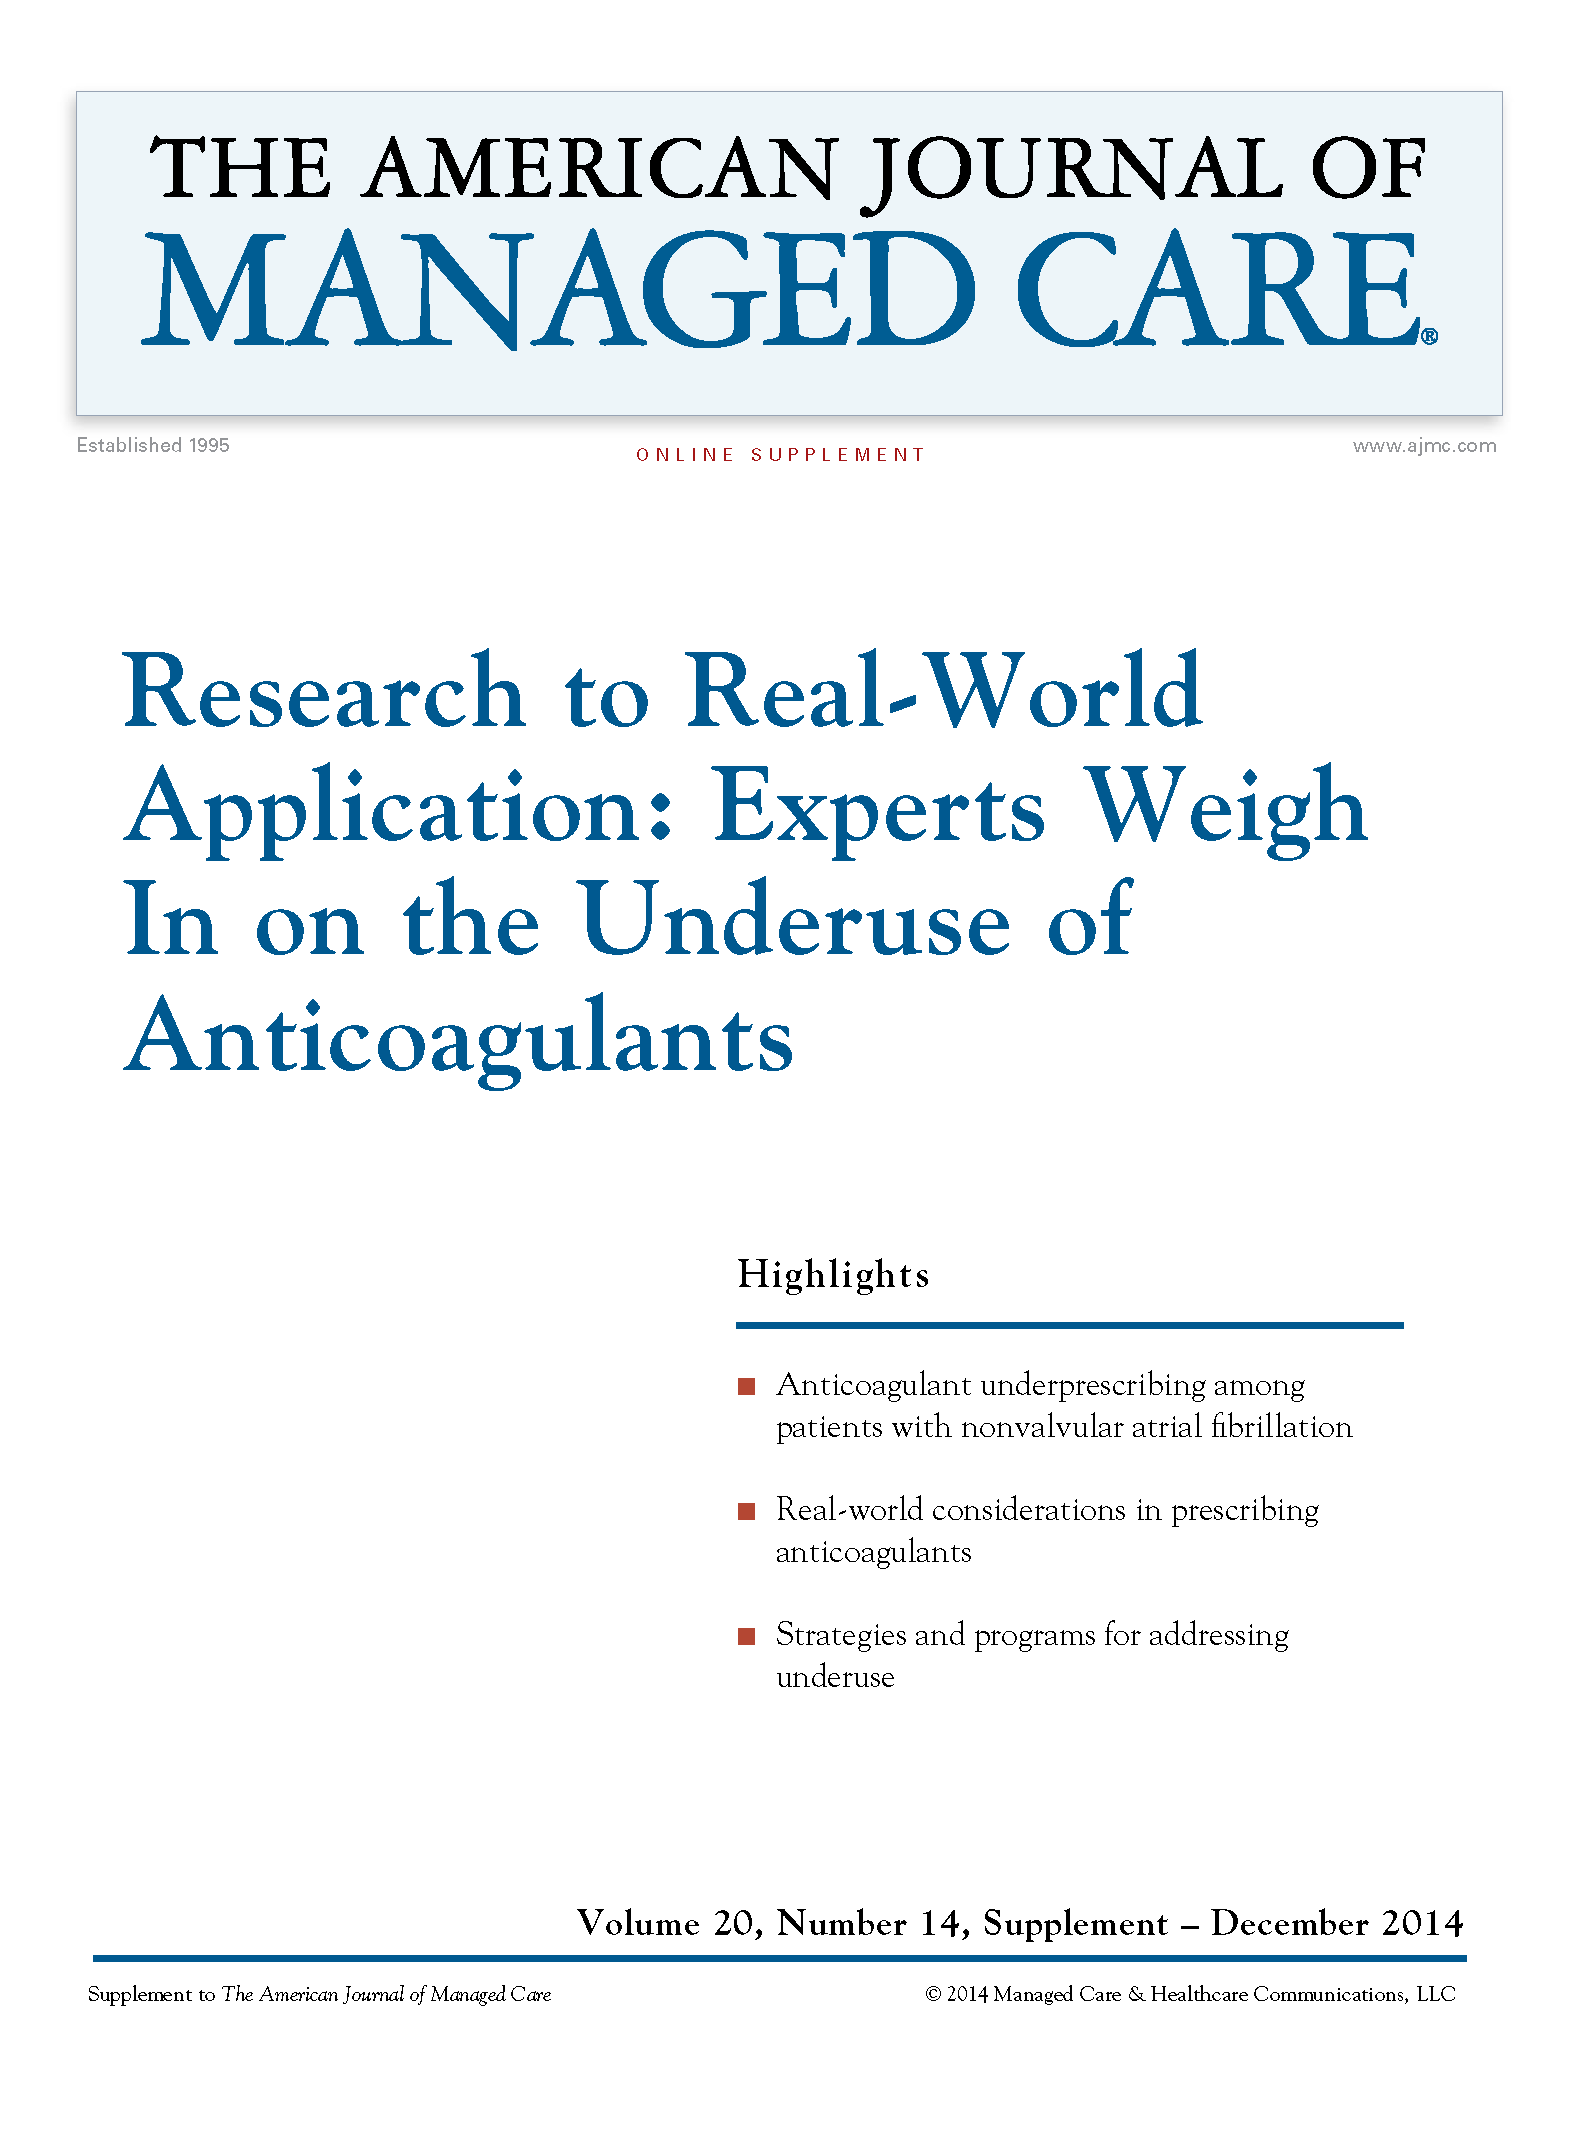 Research to Real-World Application: Experts Weigh In on the Underuse of Anticoagulants